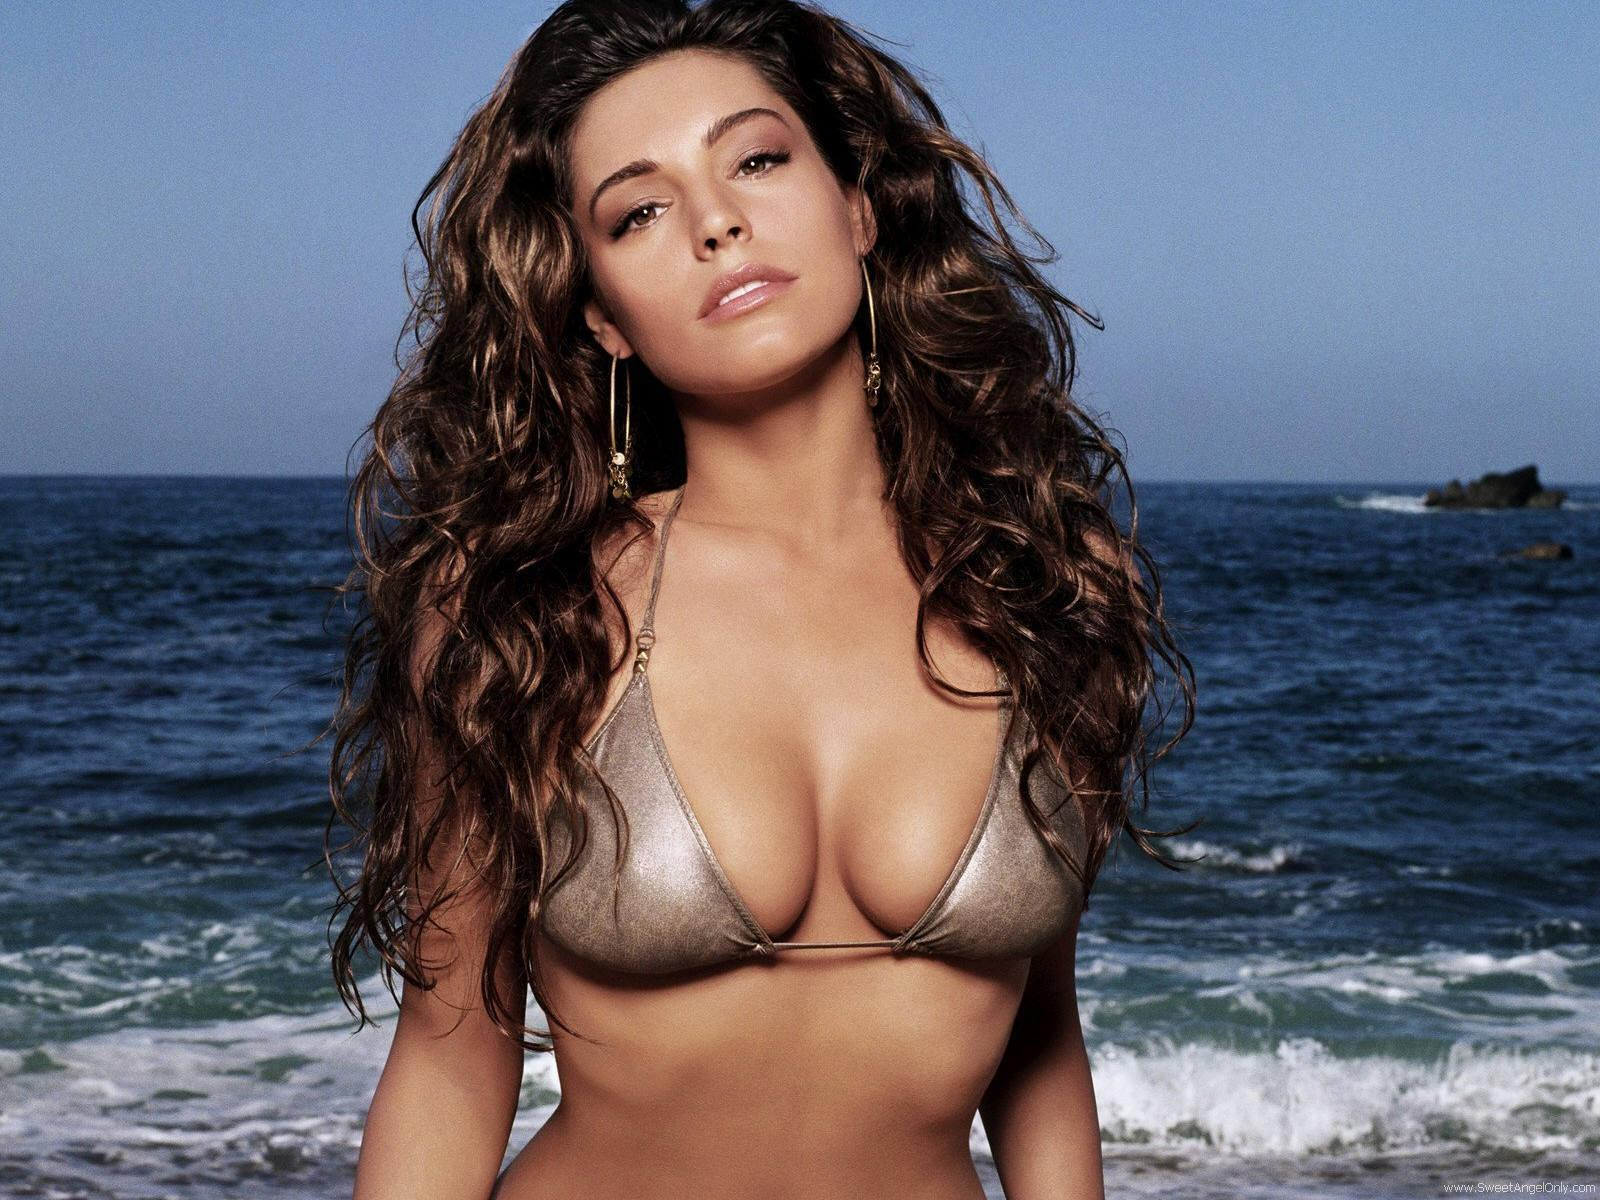 http://4.bp.blogspot.com/-Dj3Ius7kW2o/TeDnt4KiNvI/AAAAAAAAFkw/eywSQN-nHNg/s1600/kelly_brook_a_HD_Wallpaper_64.jpg